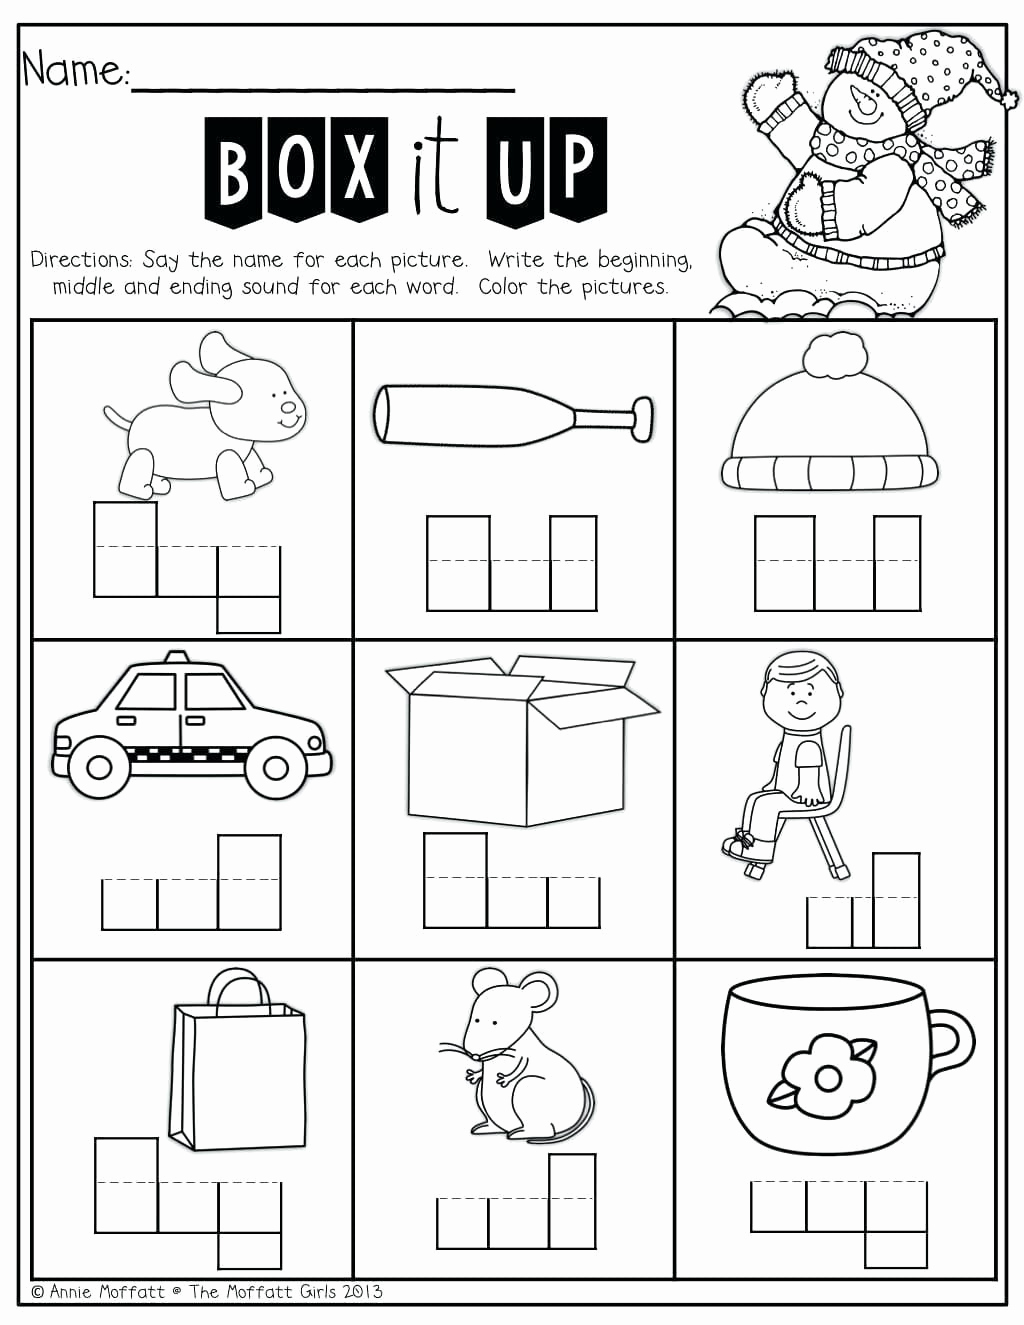 Ending sound Worksheets Free Inspirational Ending sounds Worksheets Pdf